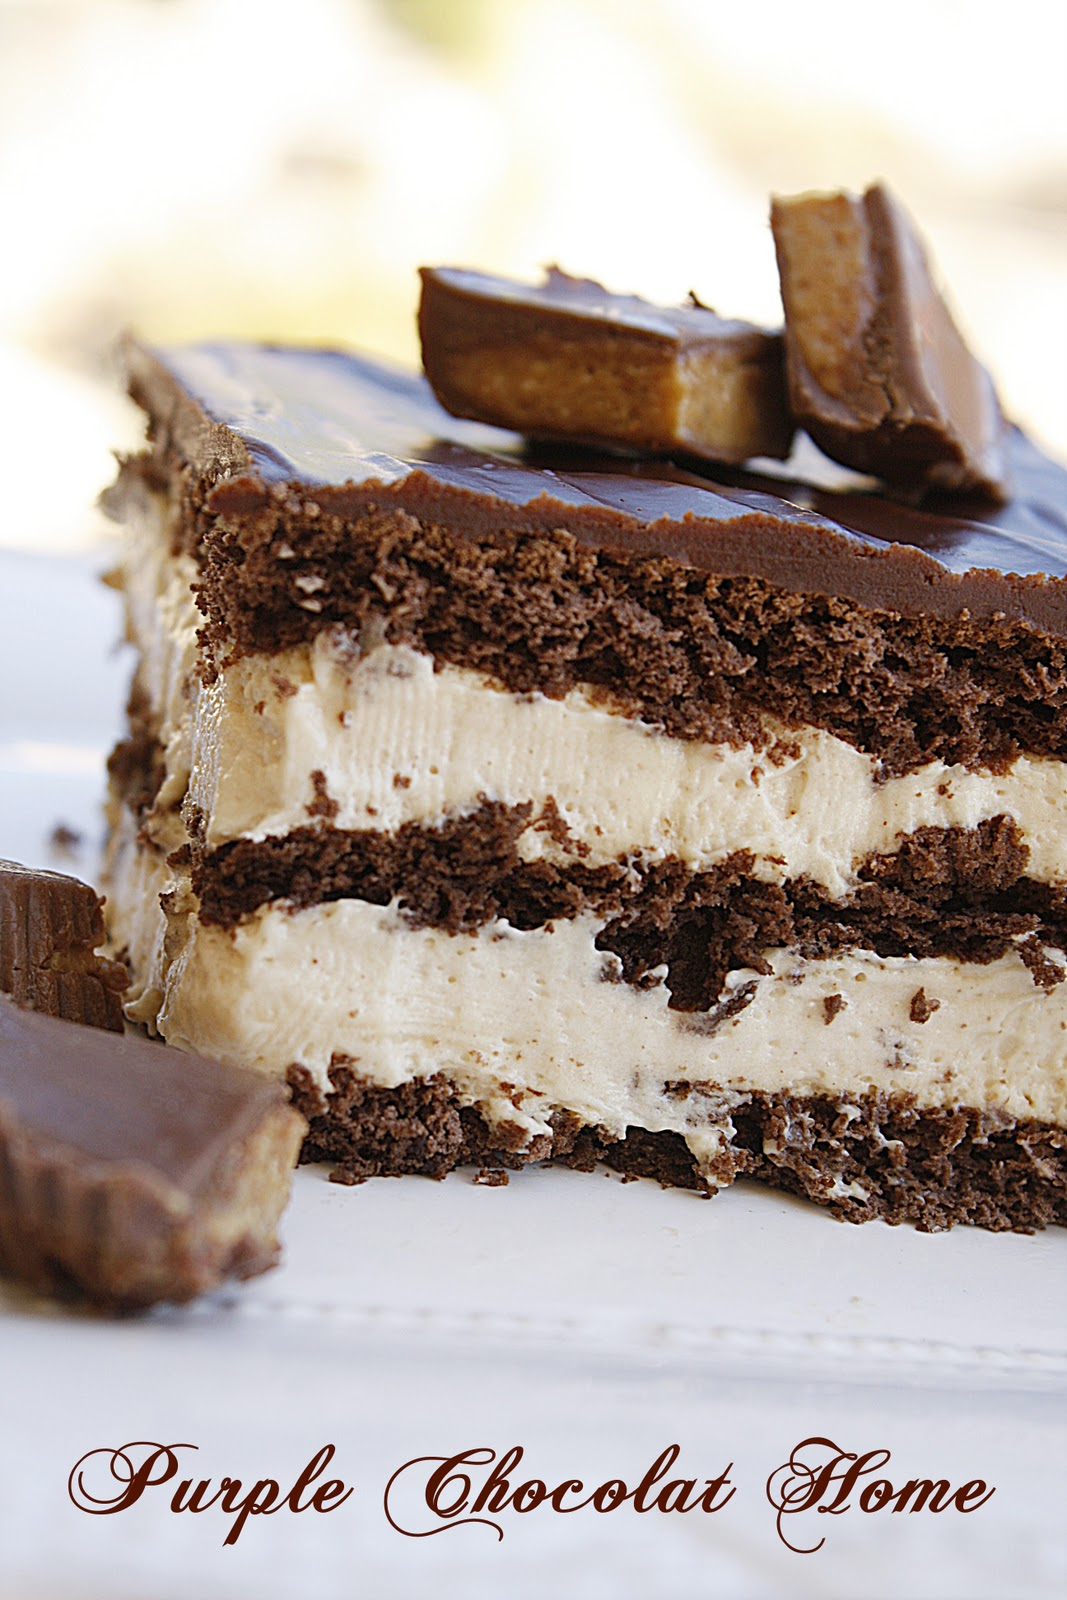 Chocolate Eclair Dessert With Chocolate Chips